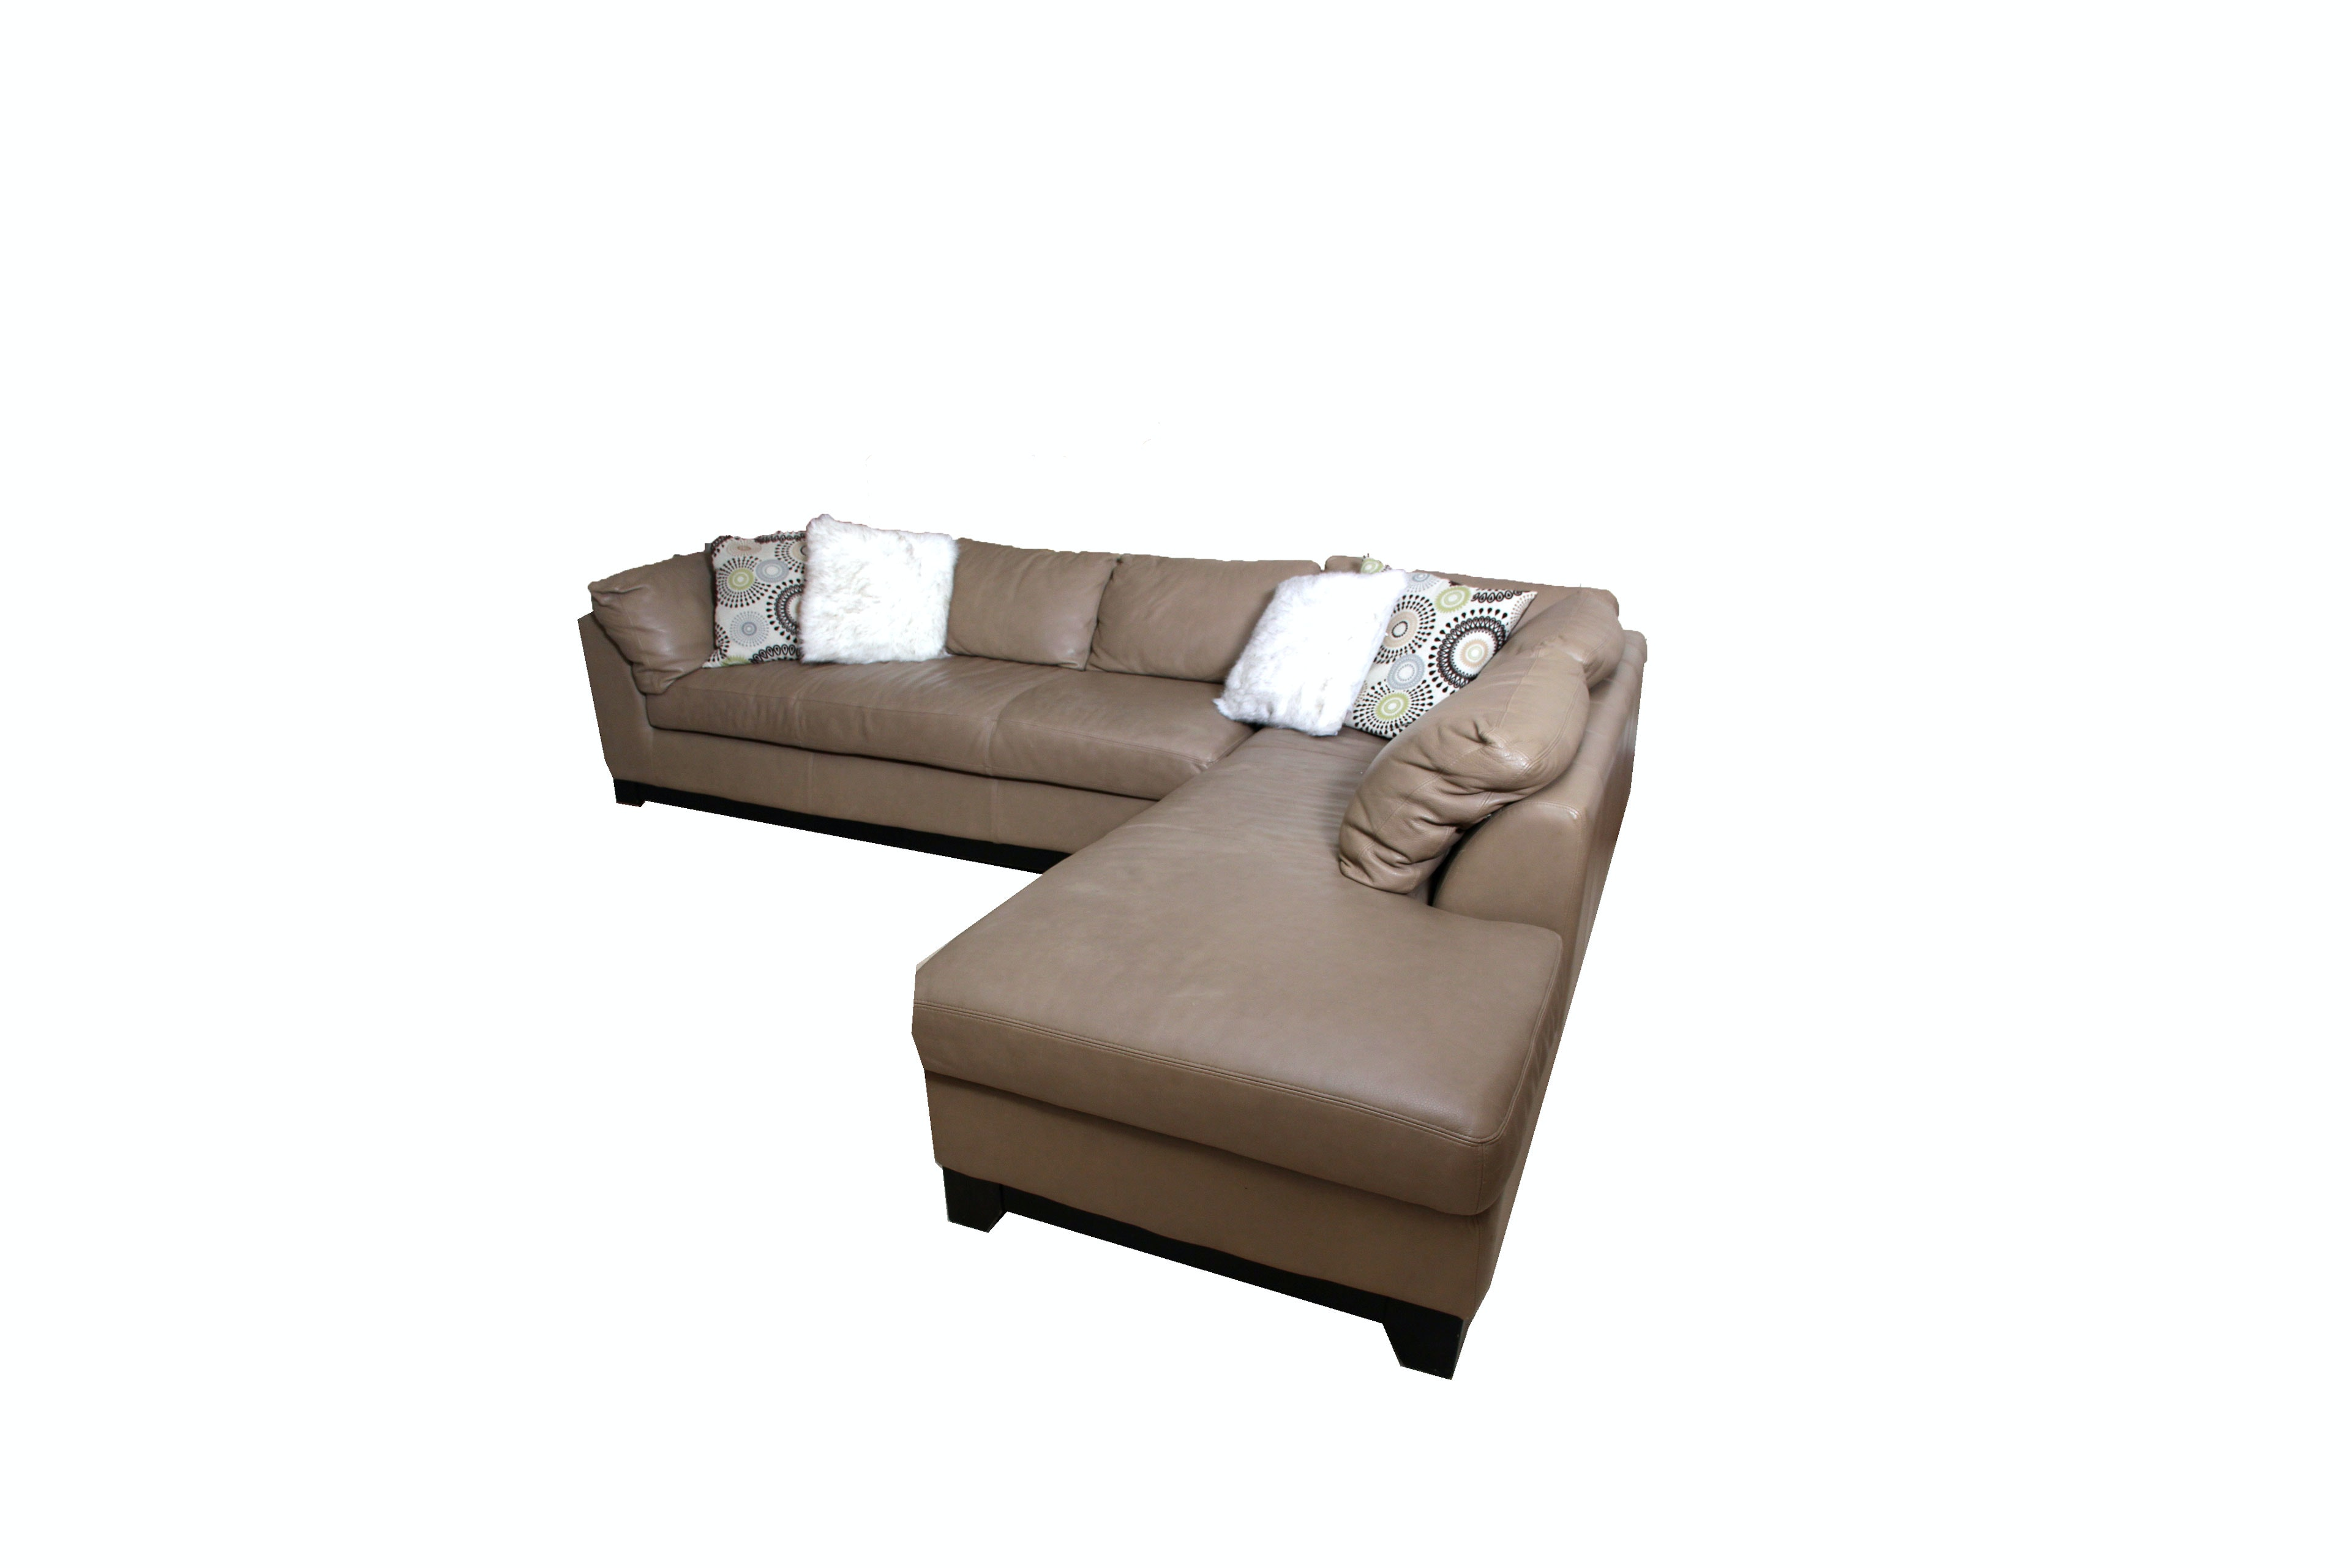 Tan Leather Sofa with Chaise and Pillows